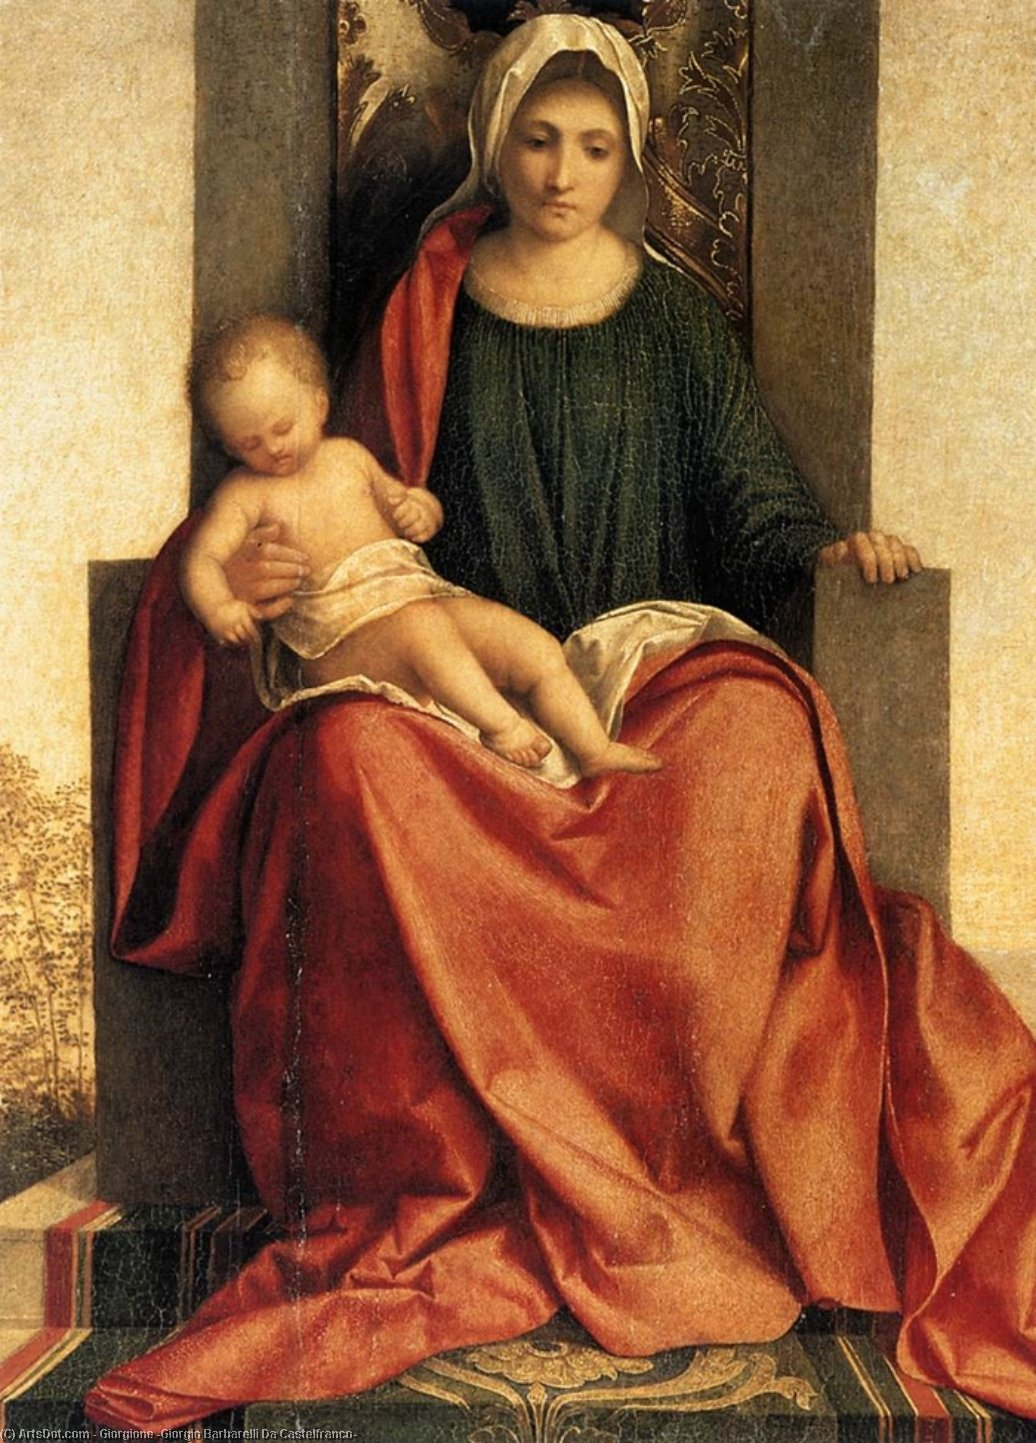 a biography of giorgio da castelfranco Giorgio da castelfranco, known as giorgione, was born in castelfranco veneto perhaps in 1477 there is so little information on his life that it is impossible to say much.